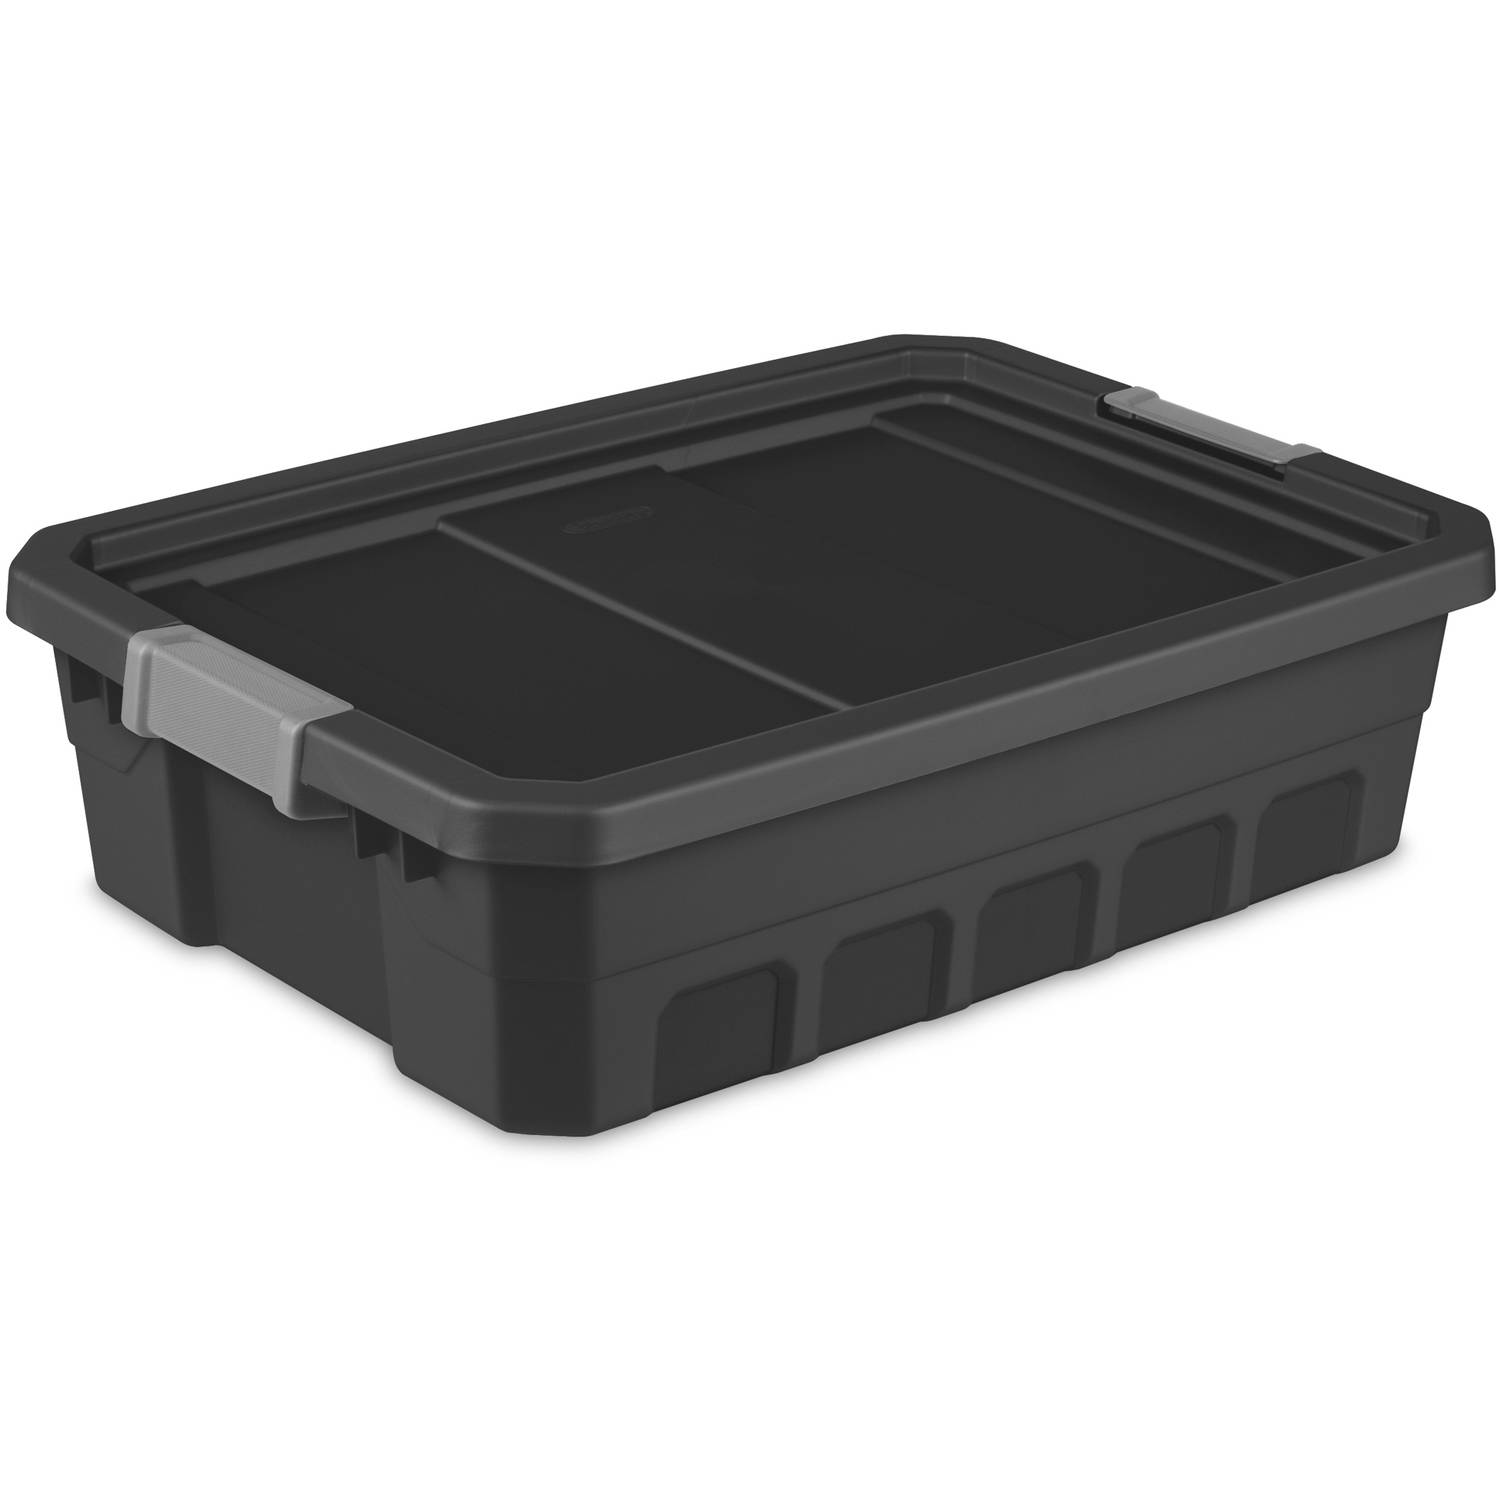 Sterilite 10 Gallon Stacker Tote- Black, Case of 6